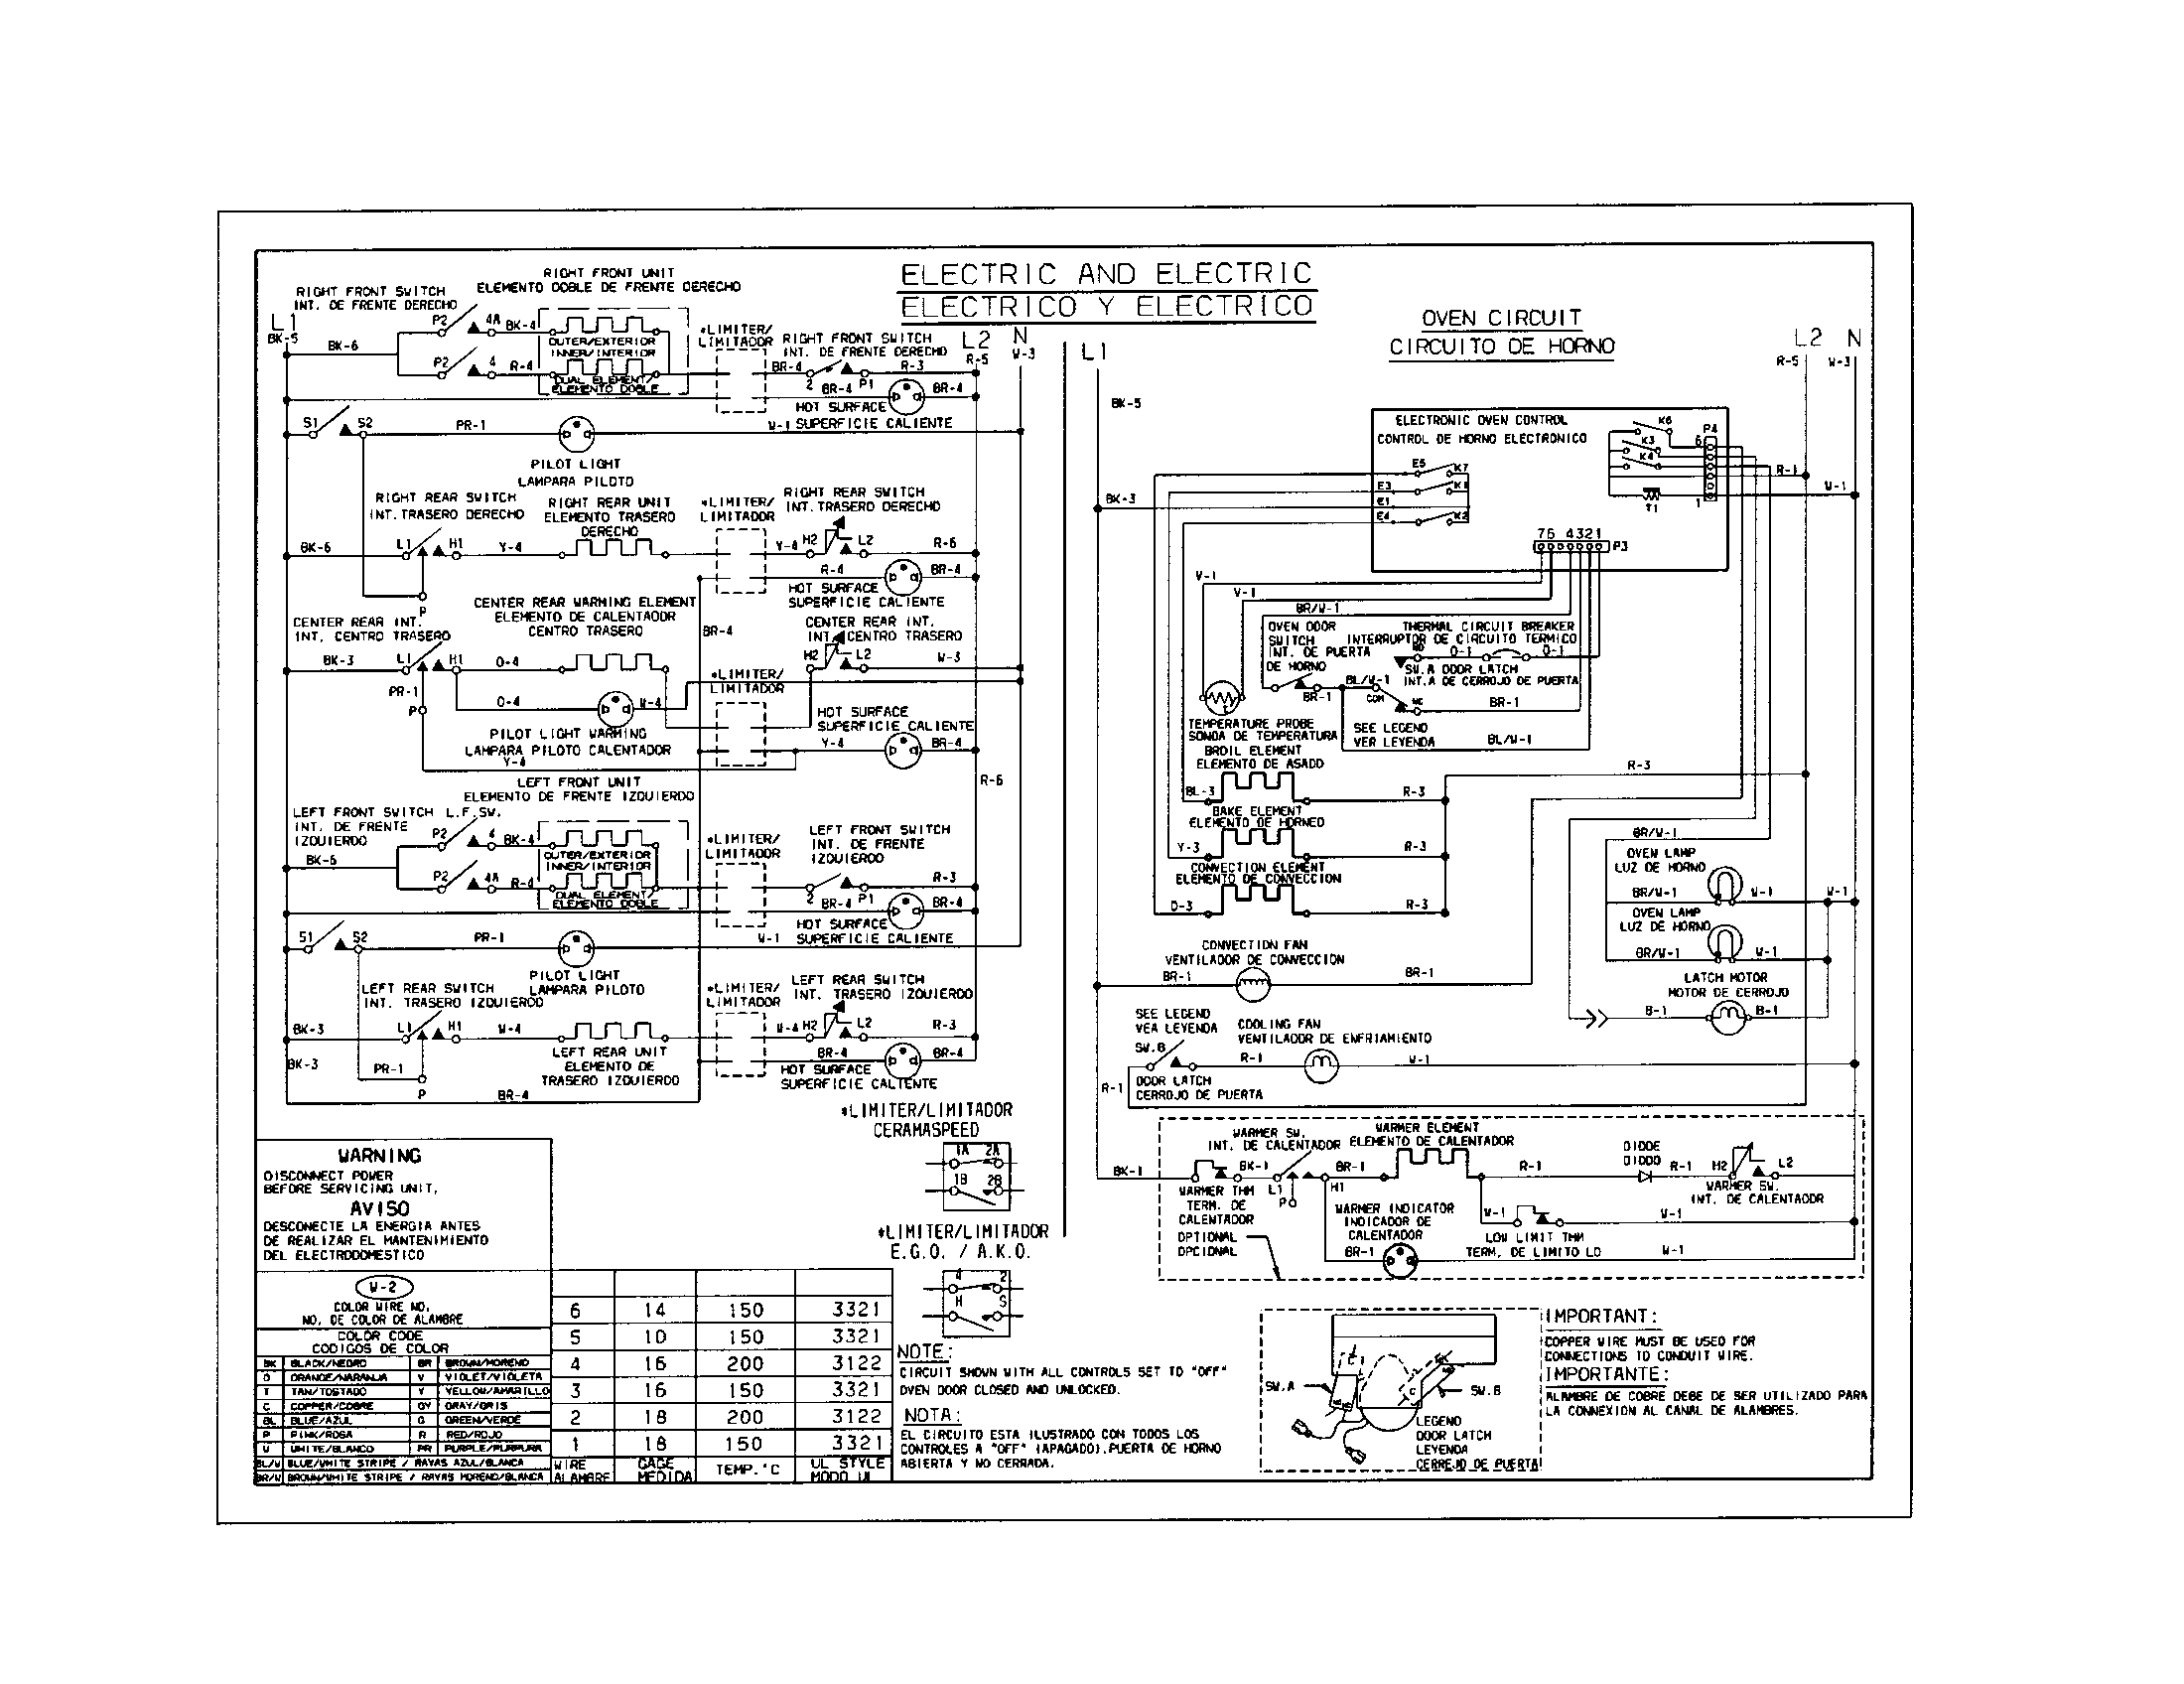 electric range wiring diagram wiring diagram and schematic design electric furnace wiring diagrams schematics and